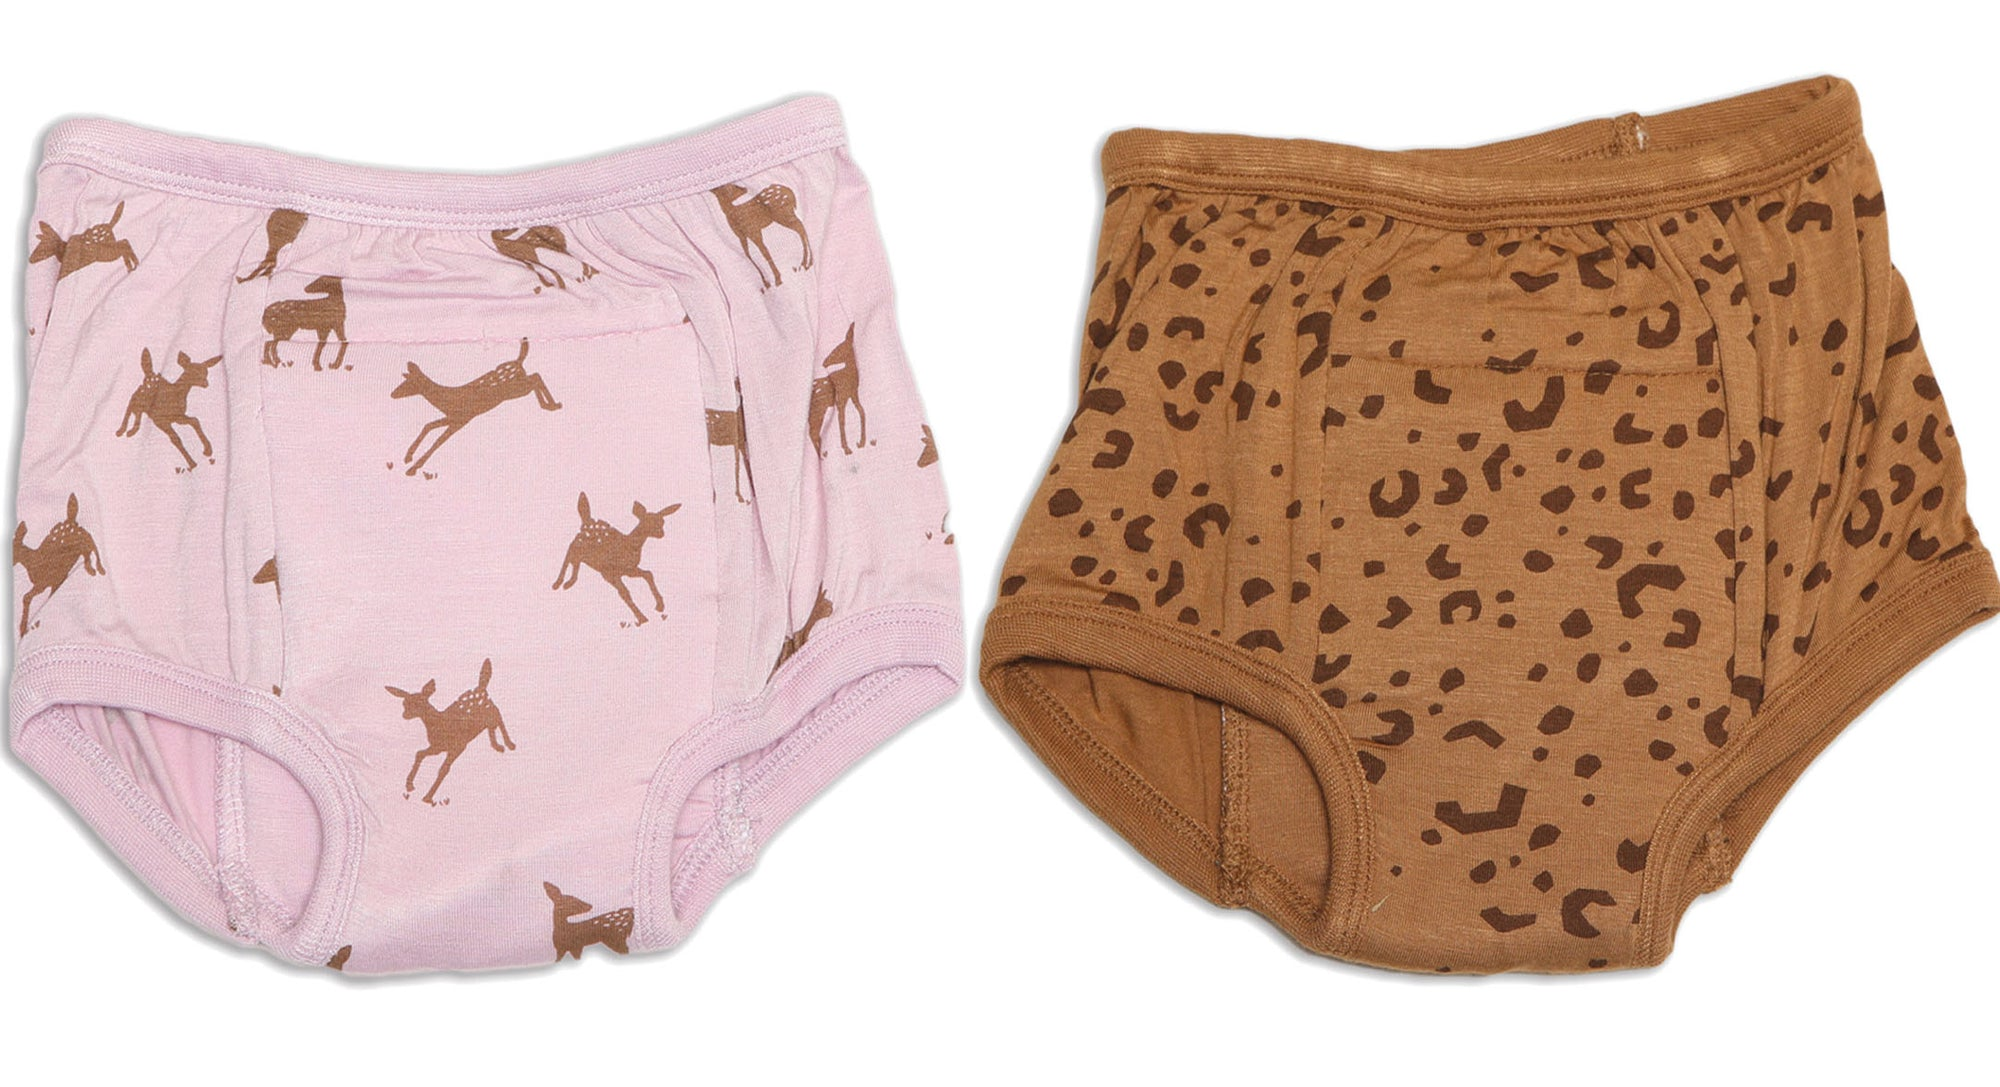 Silkberry Baby Bamboo Training Pants 2 Pack - Autumn Deer / Leopard